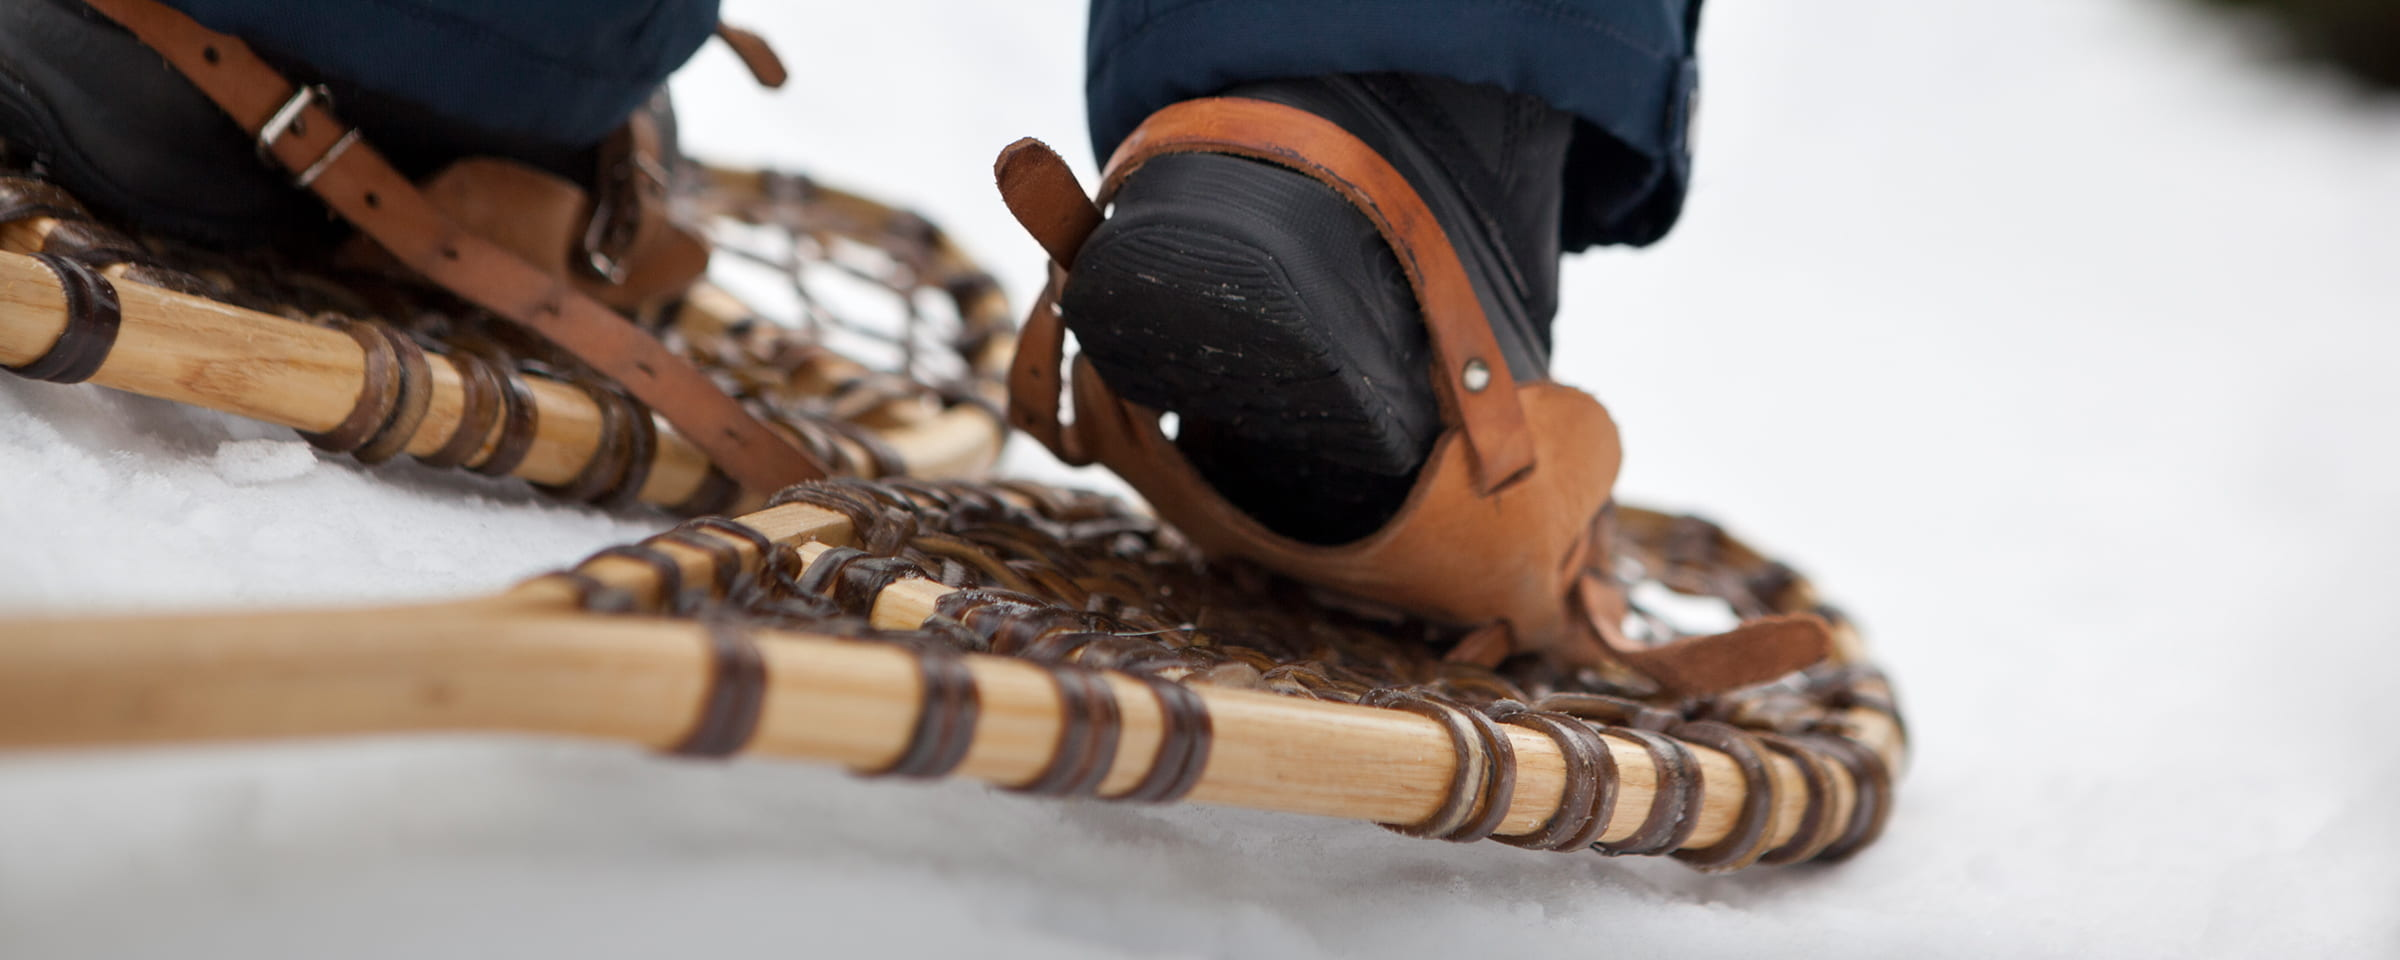 Closeup of snowshoes on snow